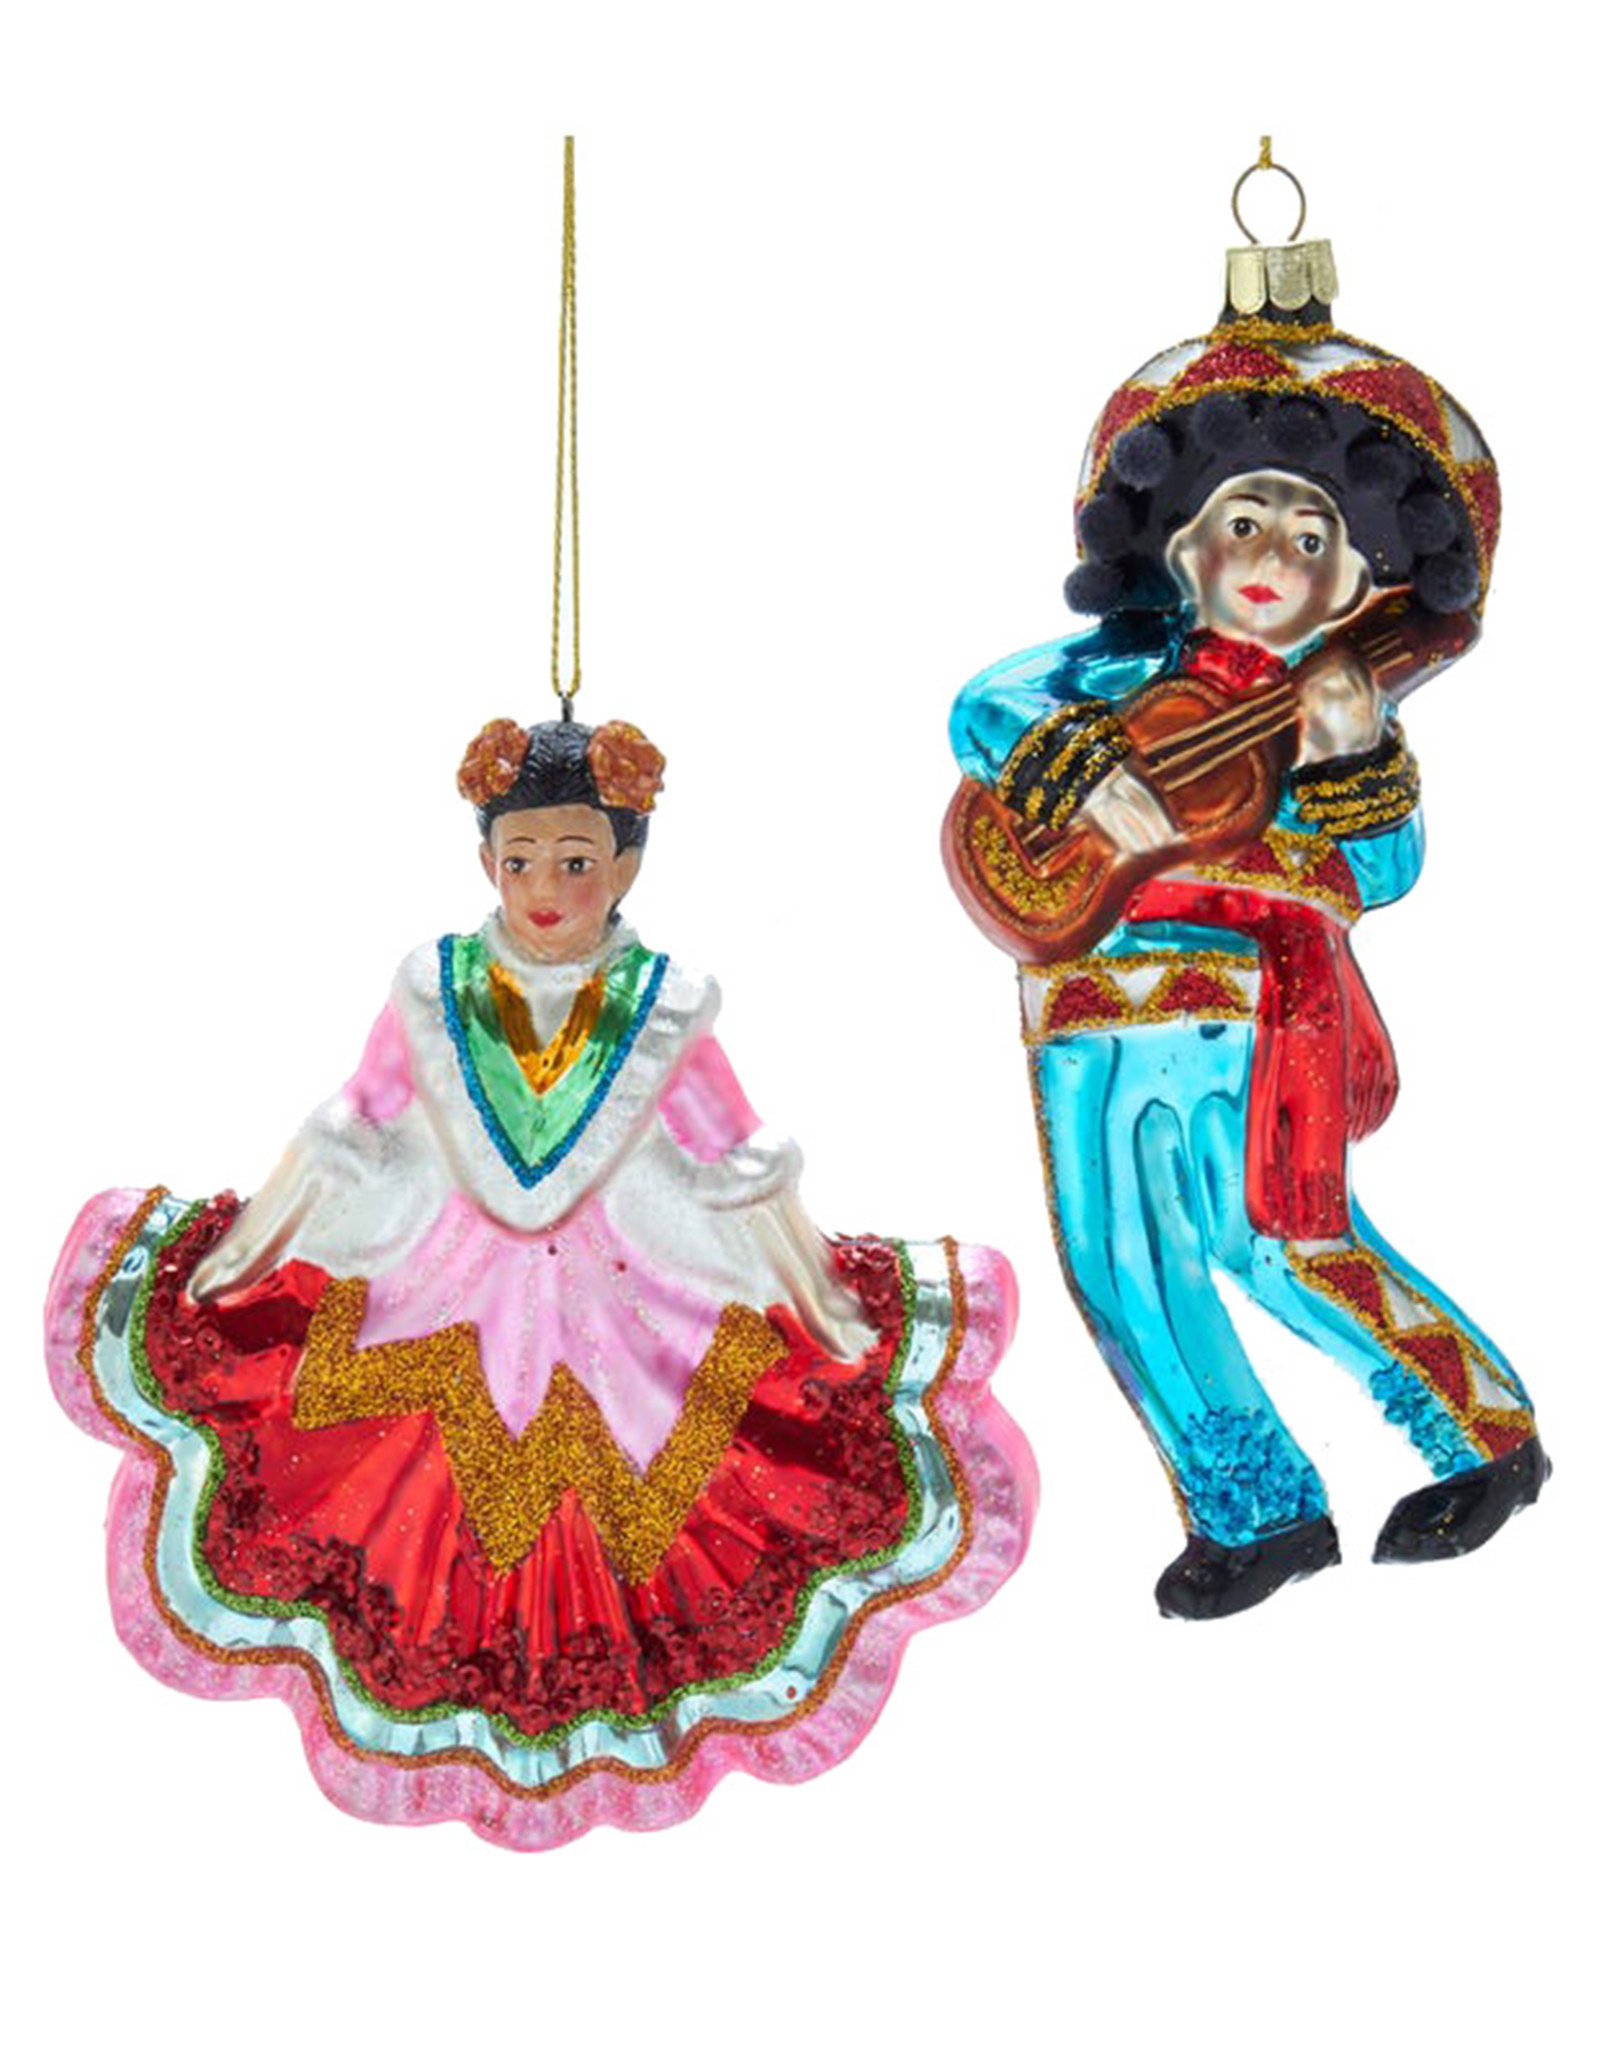 KURT ADLER MARIACHI DANCER ORNAMENT